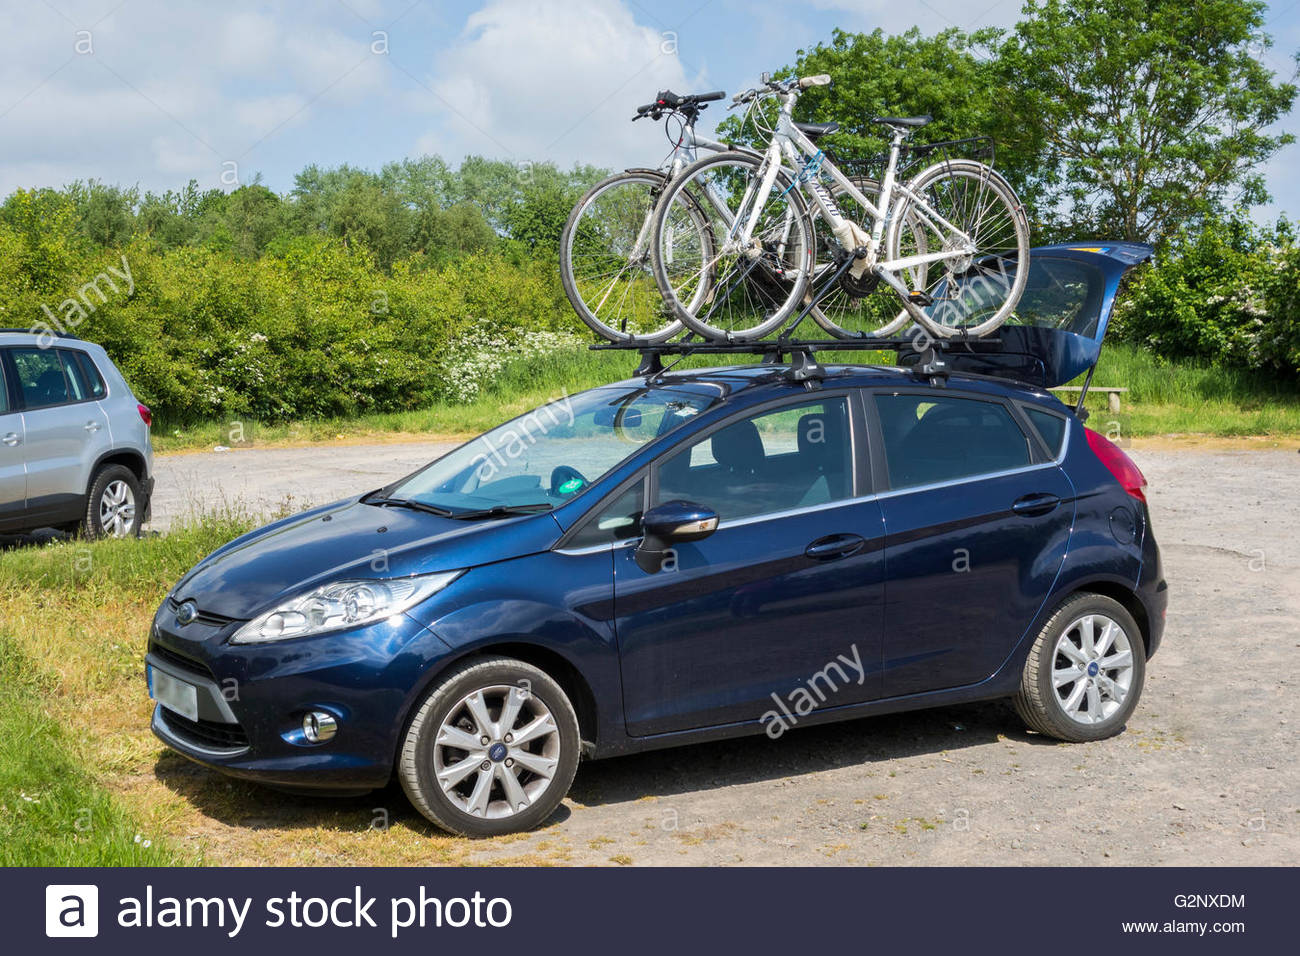 Ford Fiesta Roof Rack >> A Ford Fiesta car carrying two bikes on a roof rack Stock ...